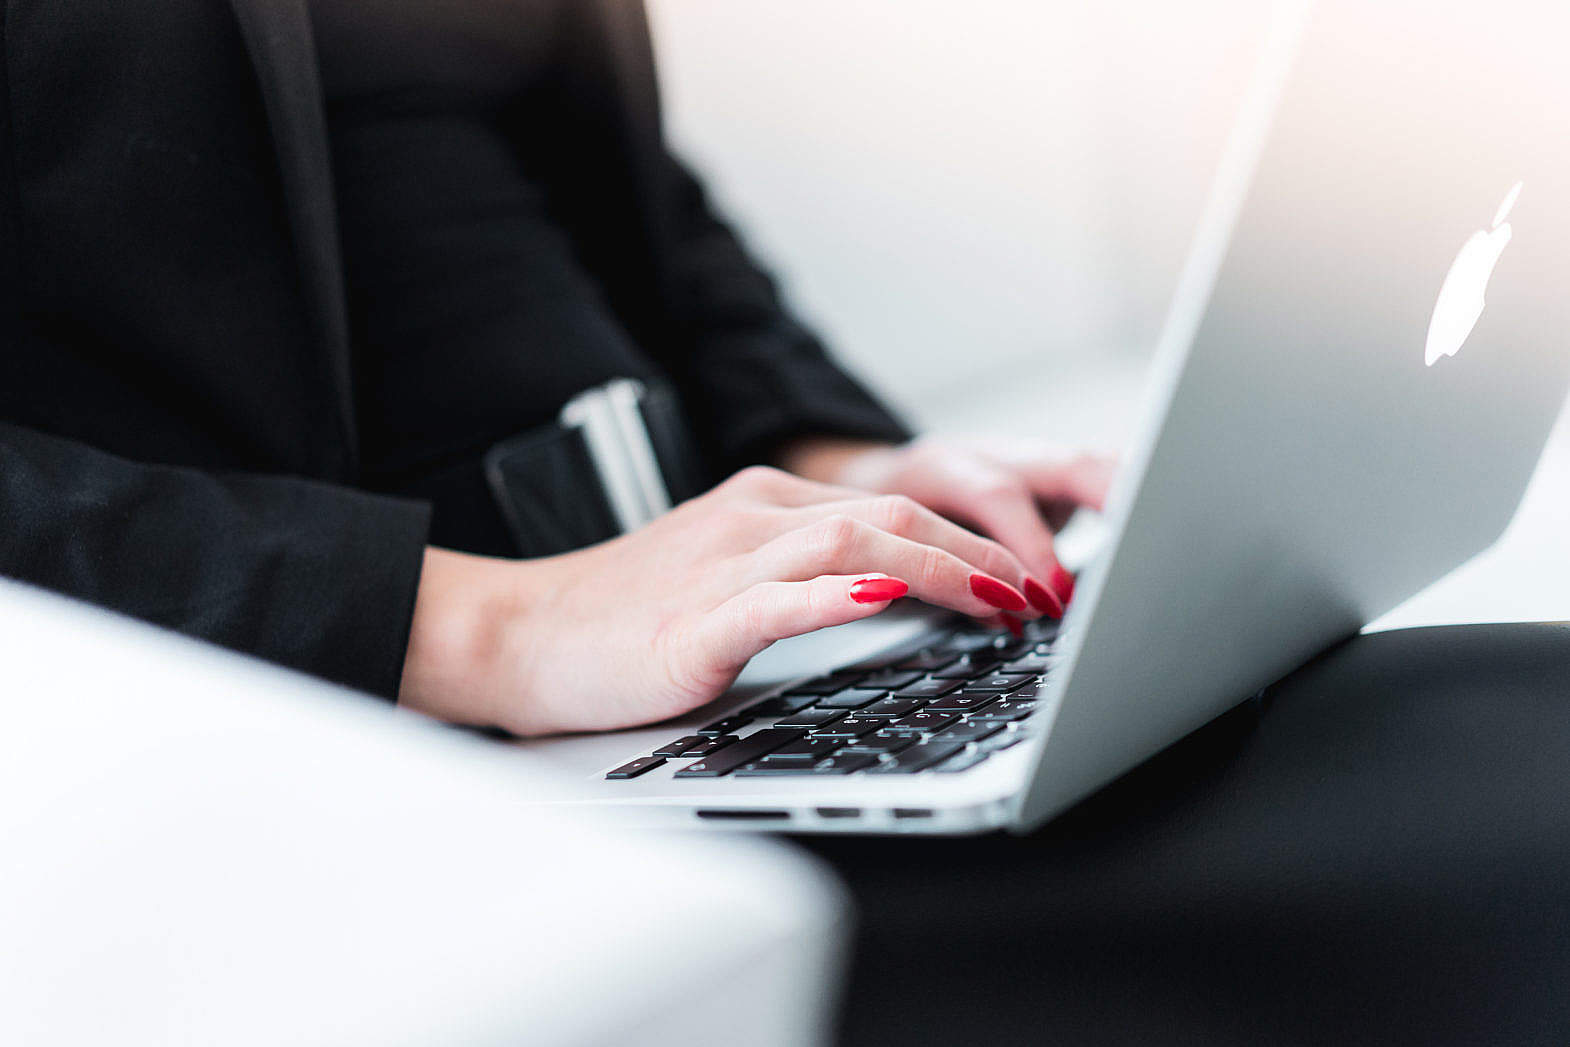 business-woman-typing-on-macbook_free_stock_photos_picjumbo_DSC07497-1570x1047